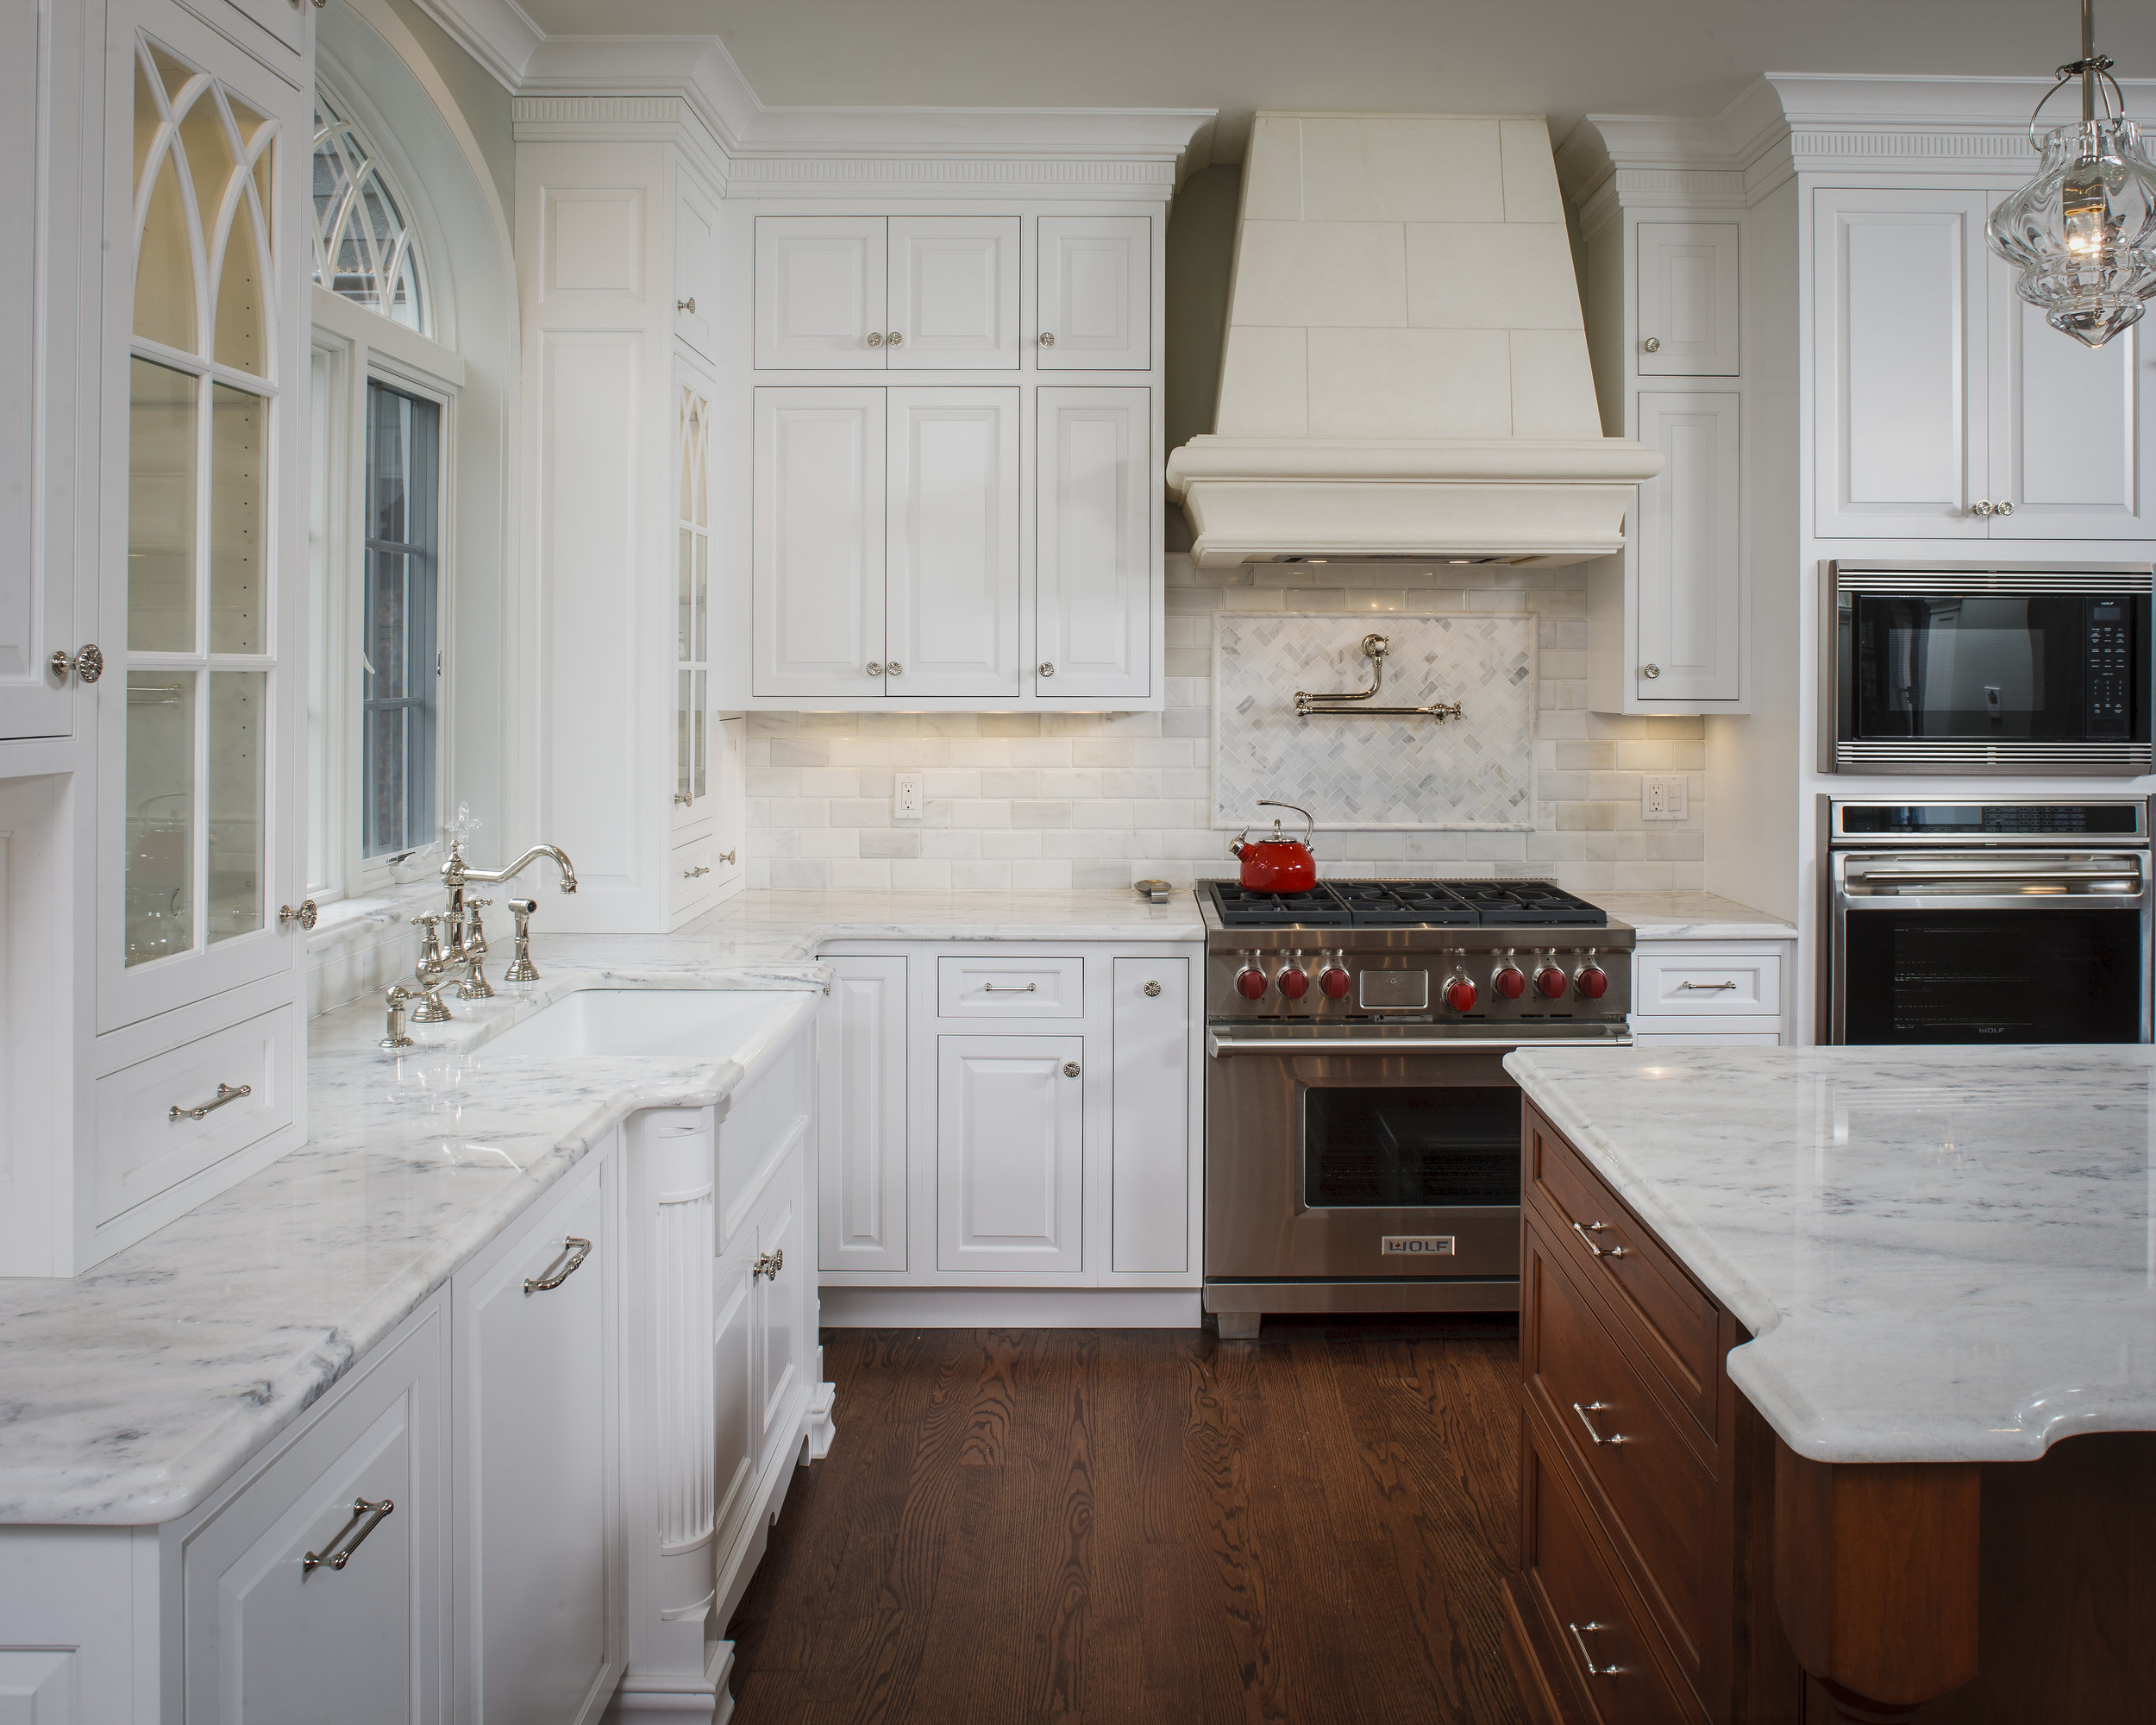 Beautiful cabinetry from Crystal. We are exclusive dealers of this amazing company featuring all collections. Well priced Current; Semi-custom and Custom Keyline. Framed and Frameless; A multitude of finish options and door styles to meet your needs.